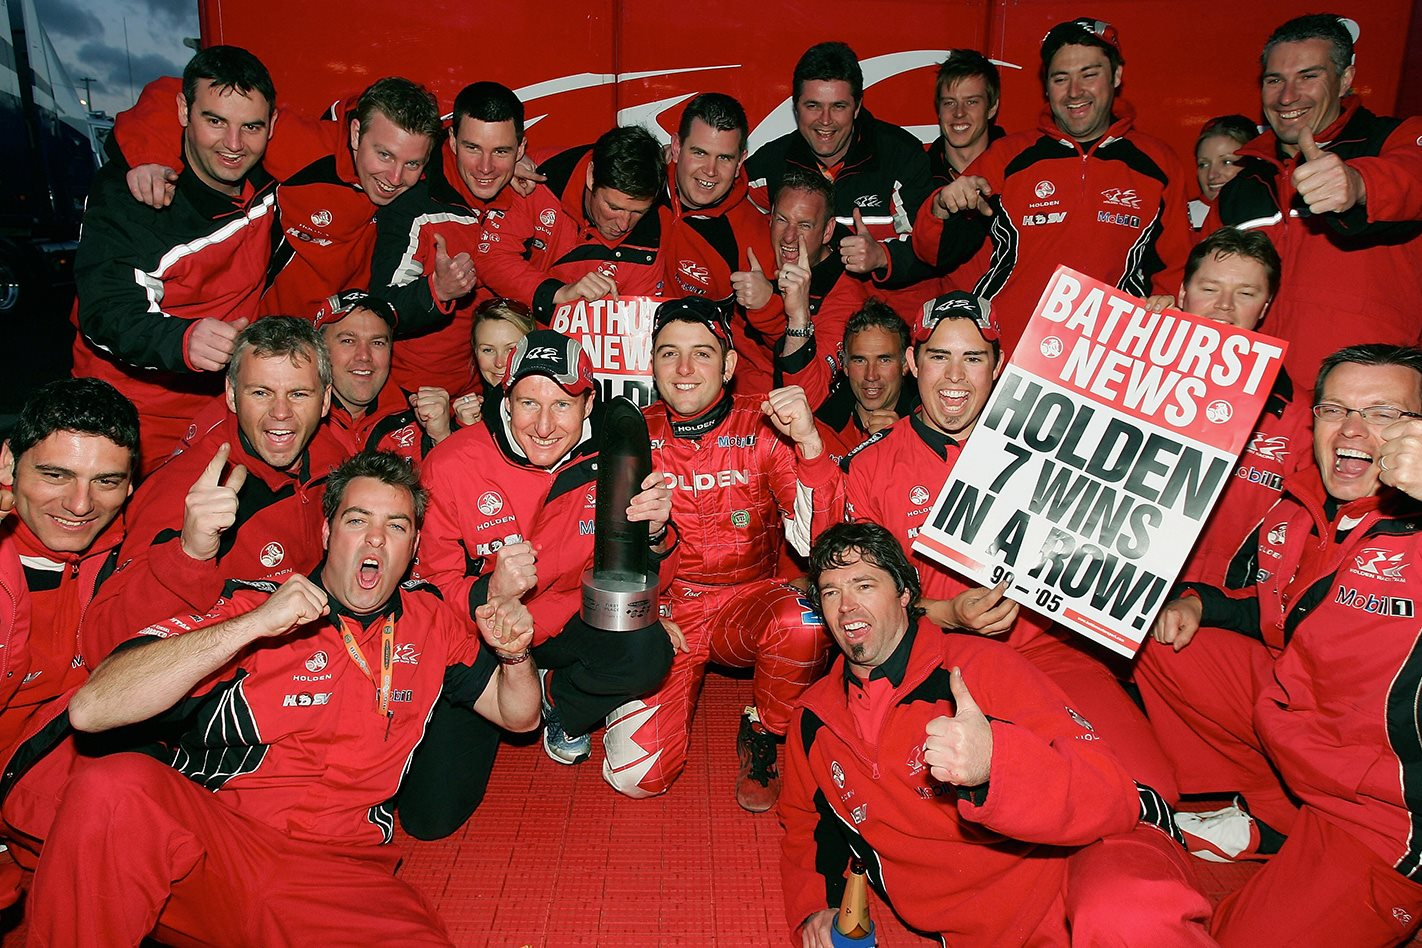 Holden-Racing-wins-Bathurst-7-wins-in-a-row.jpg